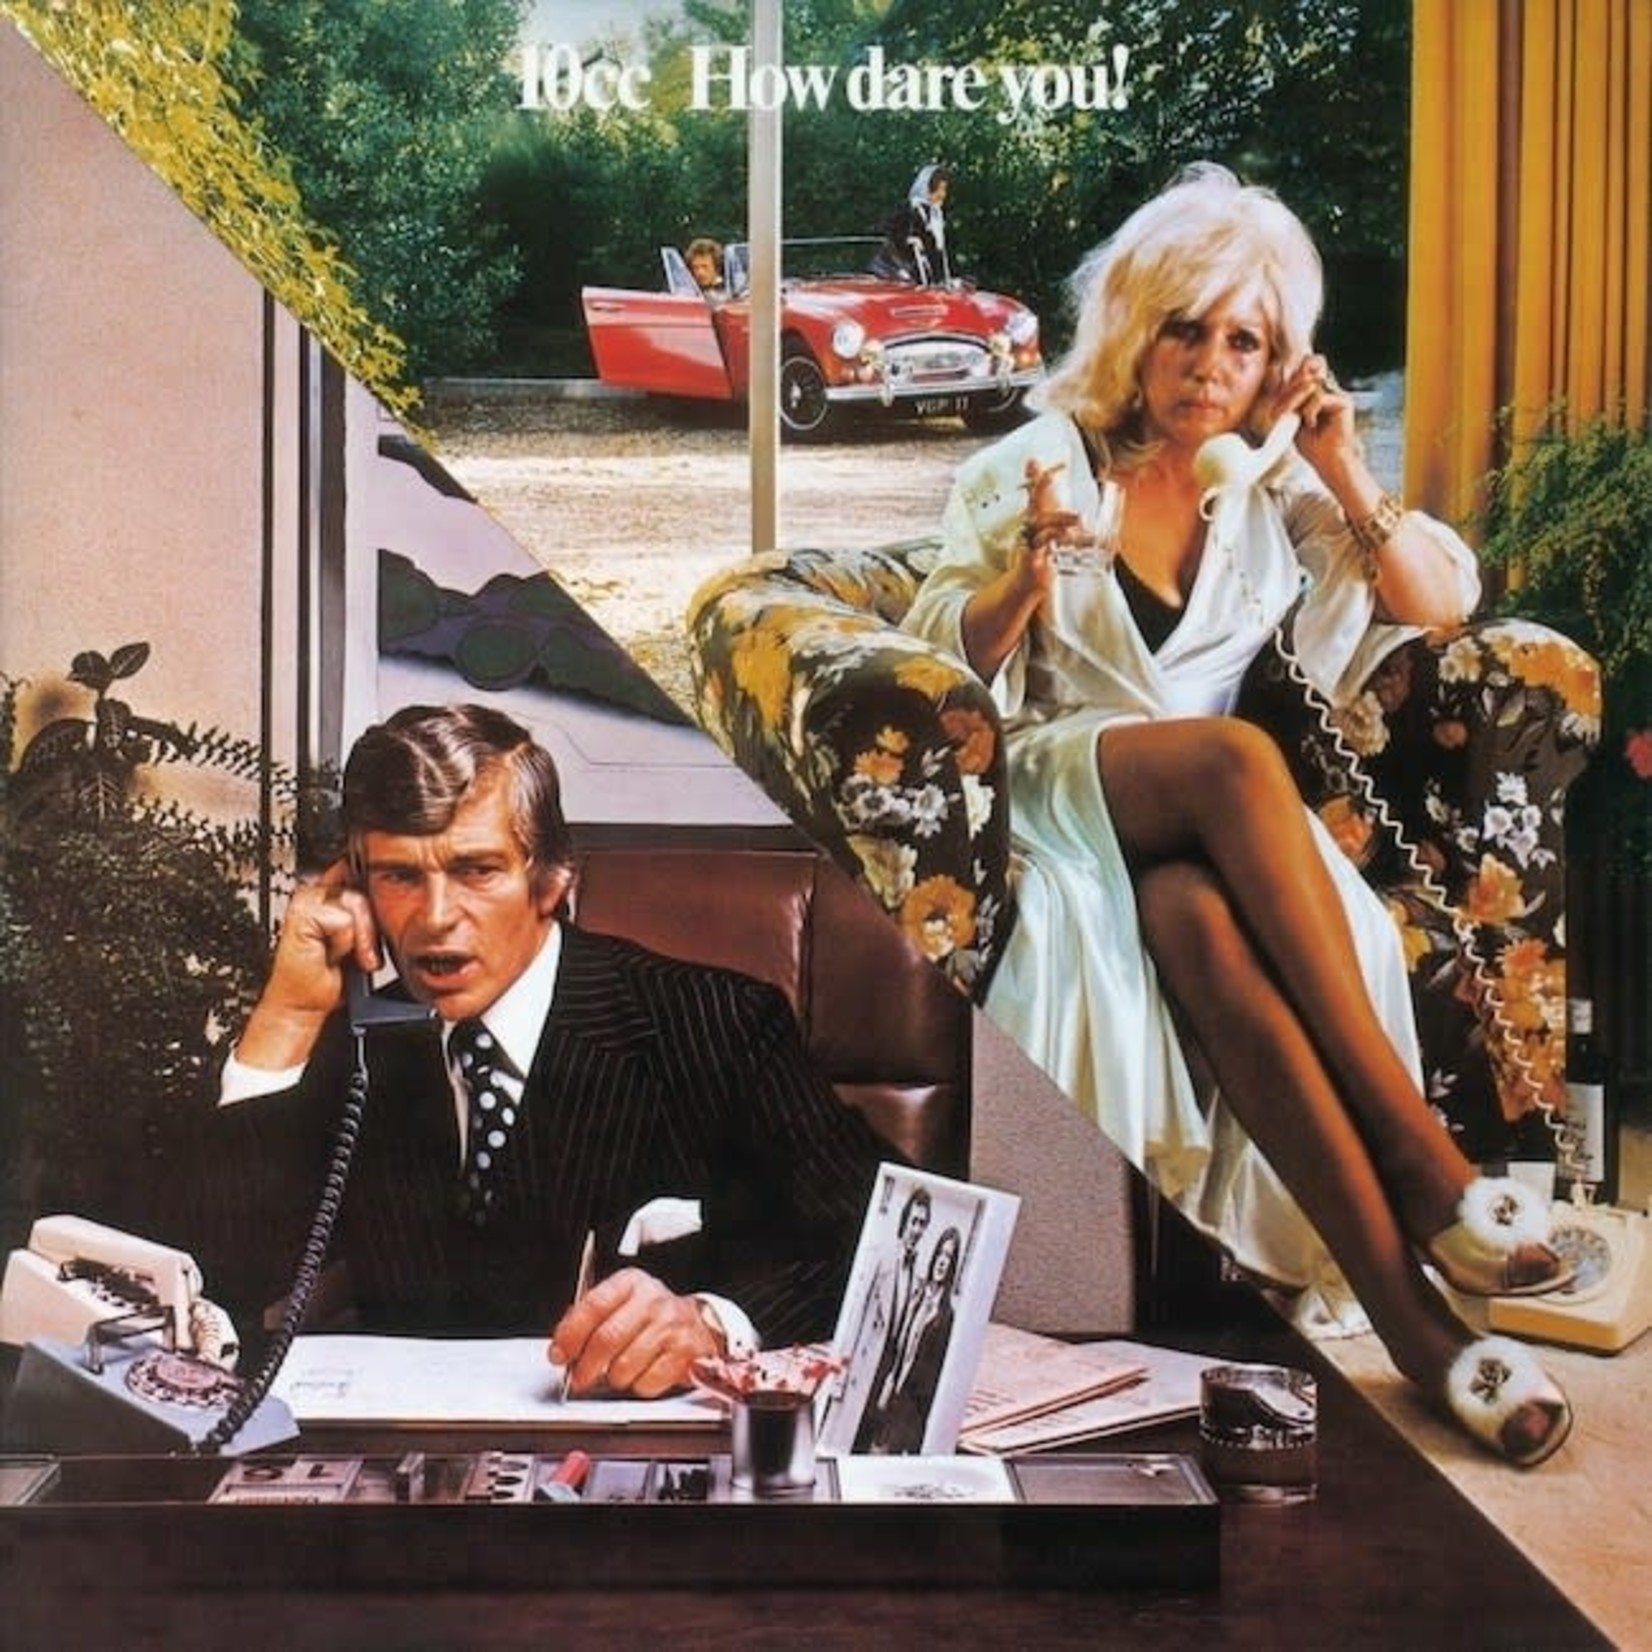 [Vintage] 10cc: How Dare You